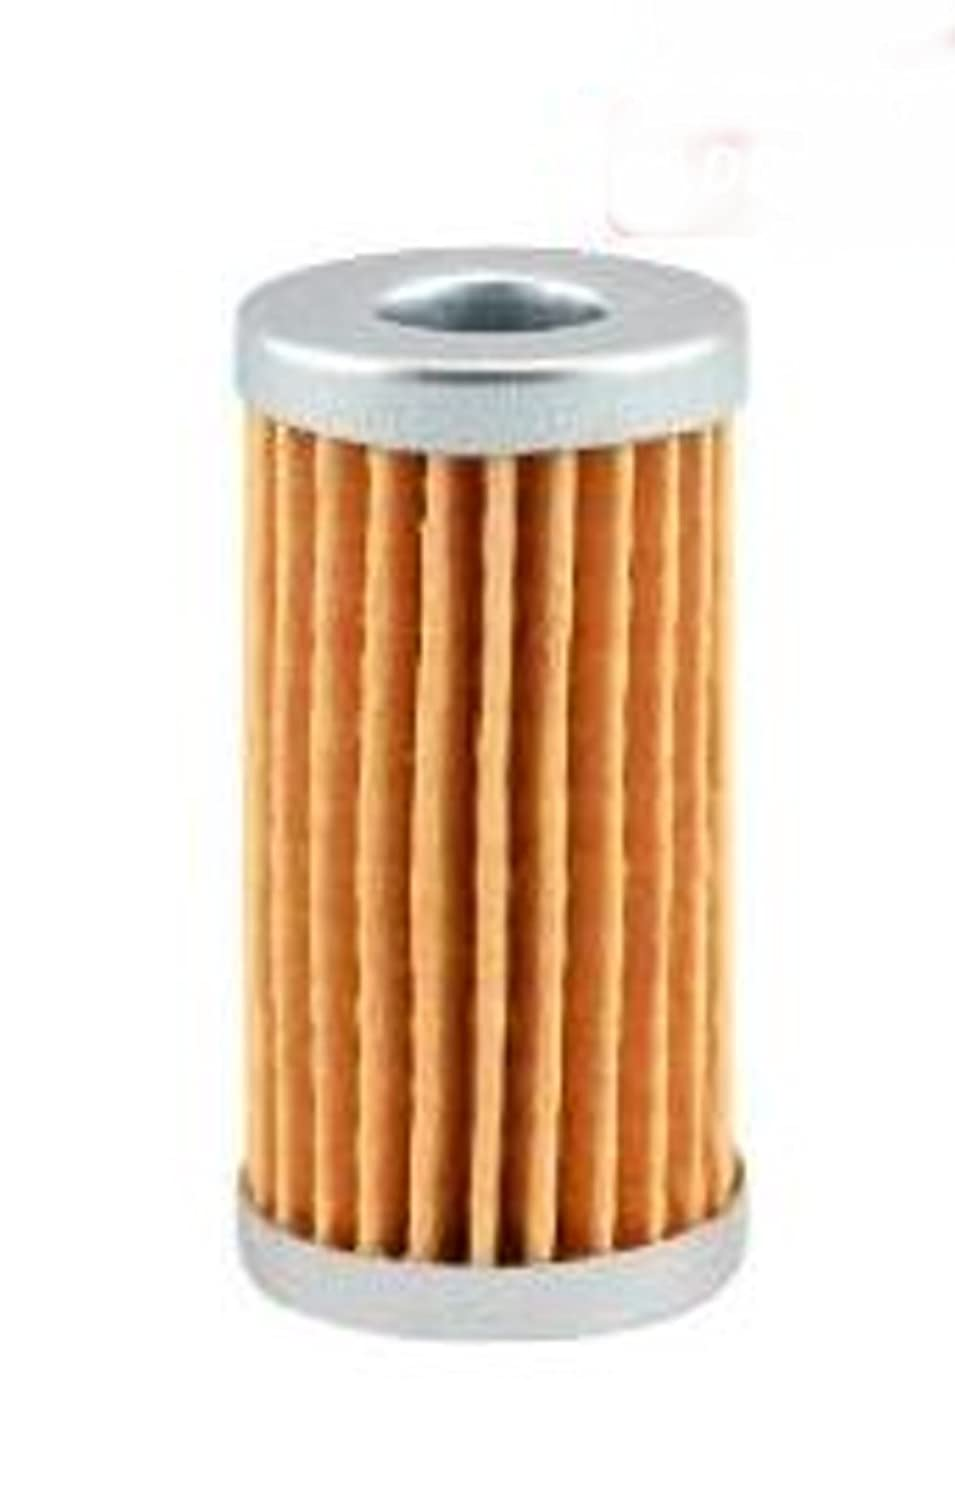 Amazon.com: Fuel Filter for Ford 1000 1110 1120 1210 1215 1220 1300 1310  1320 1500 1510 1520 1530 1600 1620 1630 1700 1710 1715 1720 1725 1925 2030  2030 ...